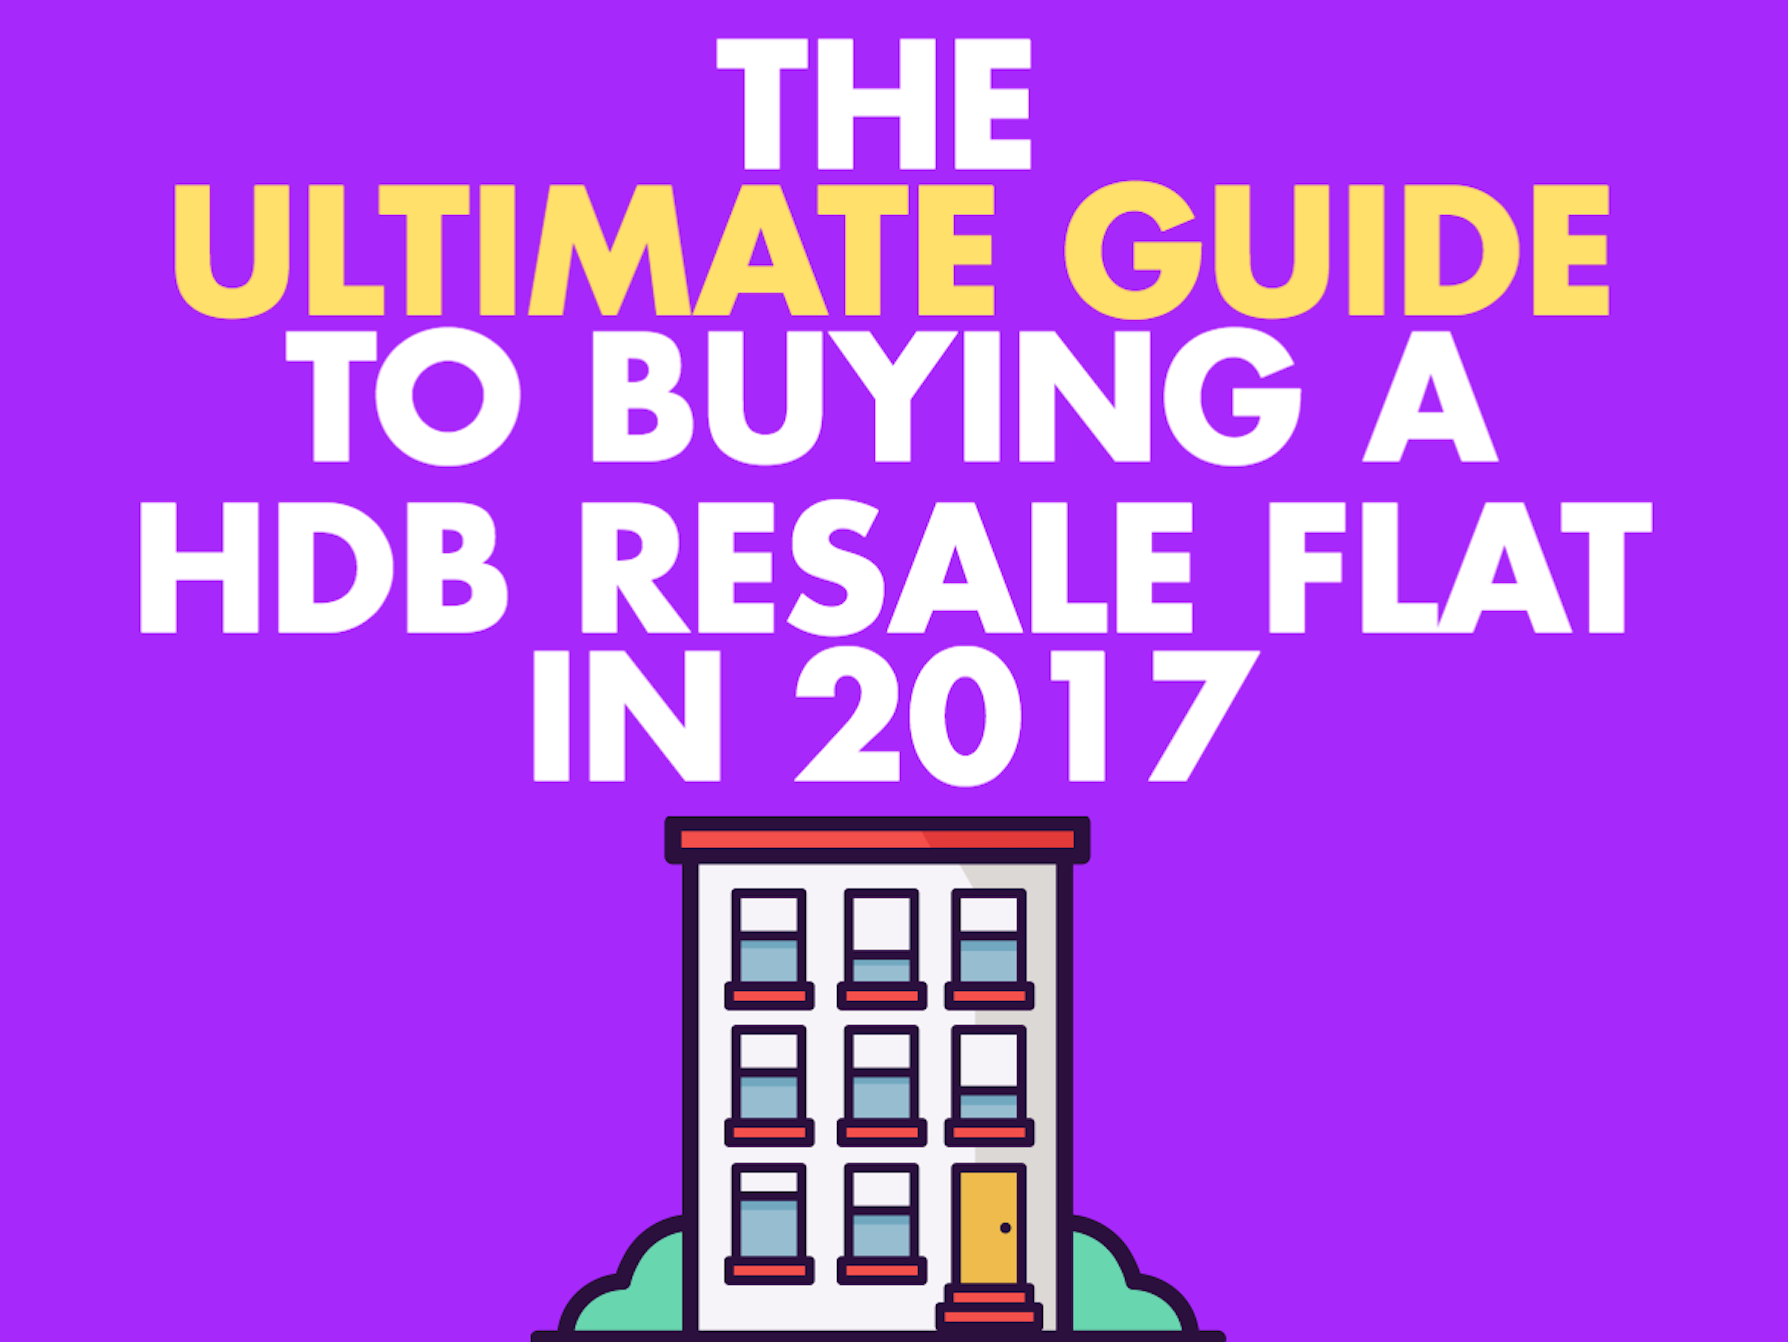 The Ultimate Guide to buying a resale HDB flat in 2017 ...